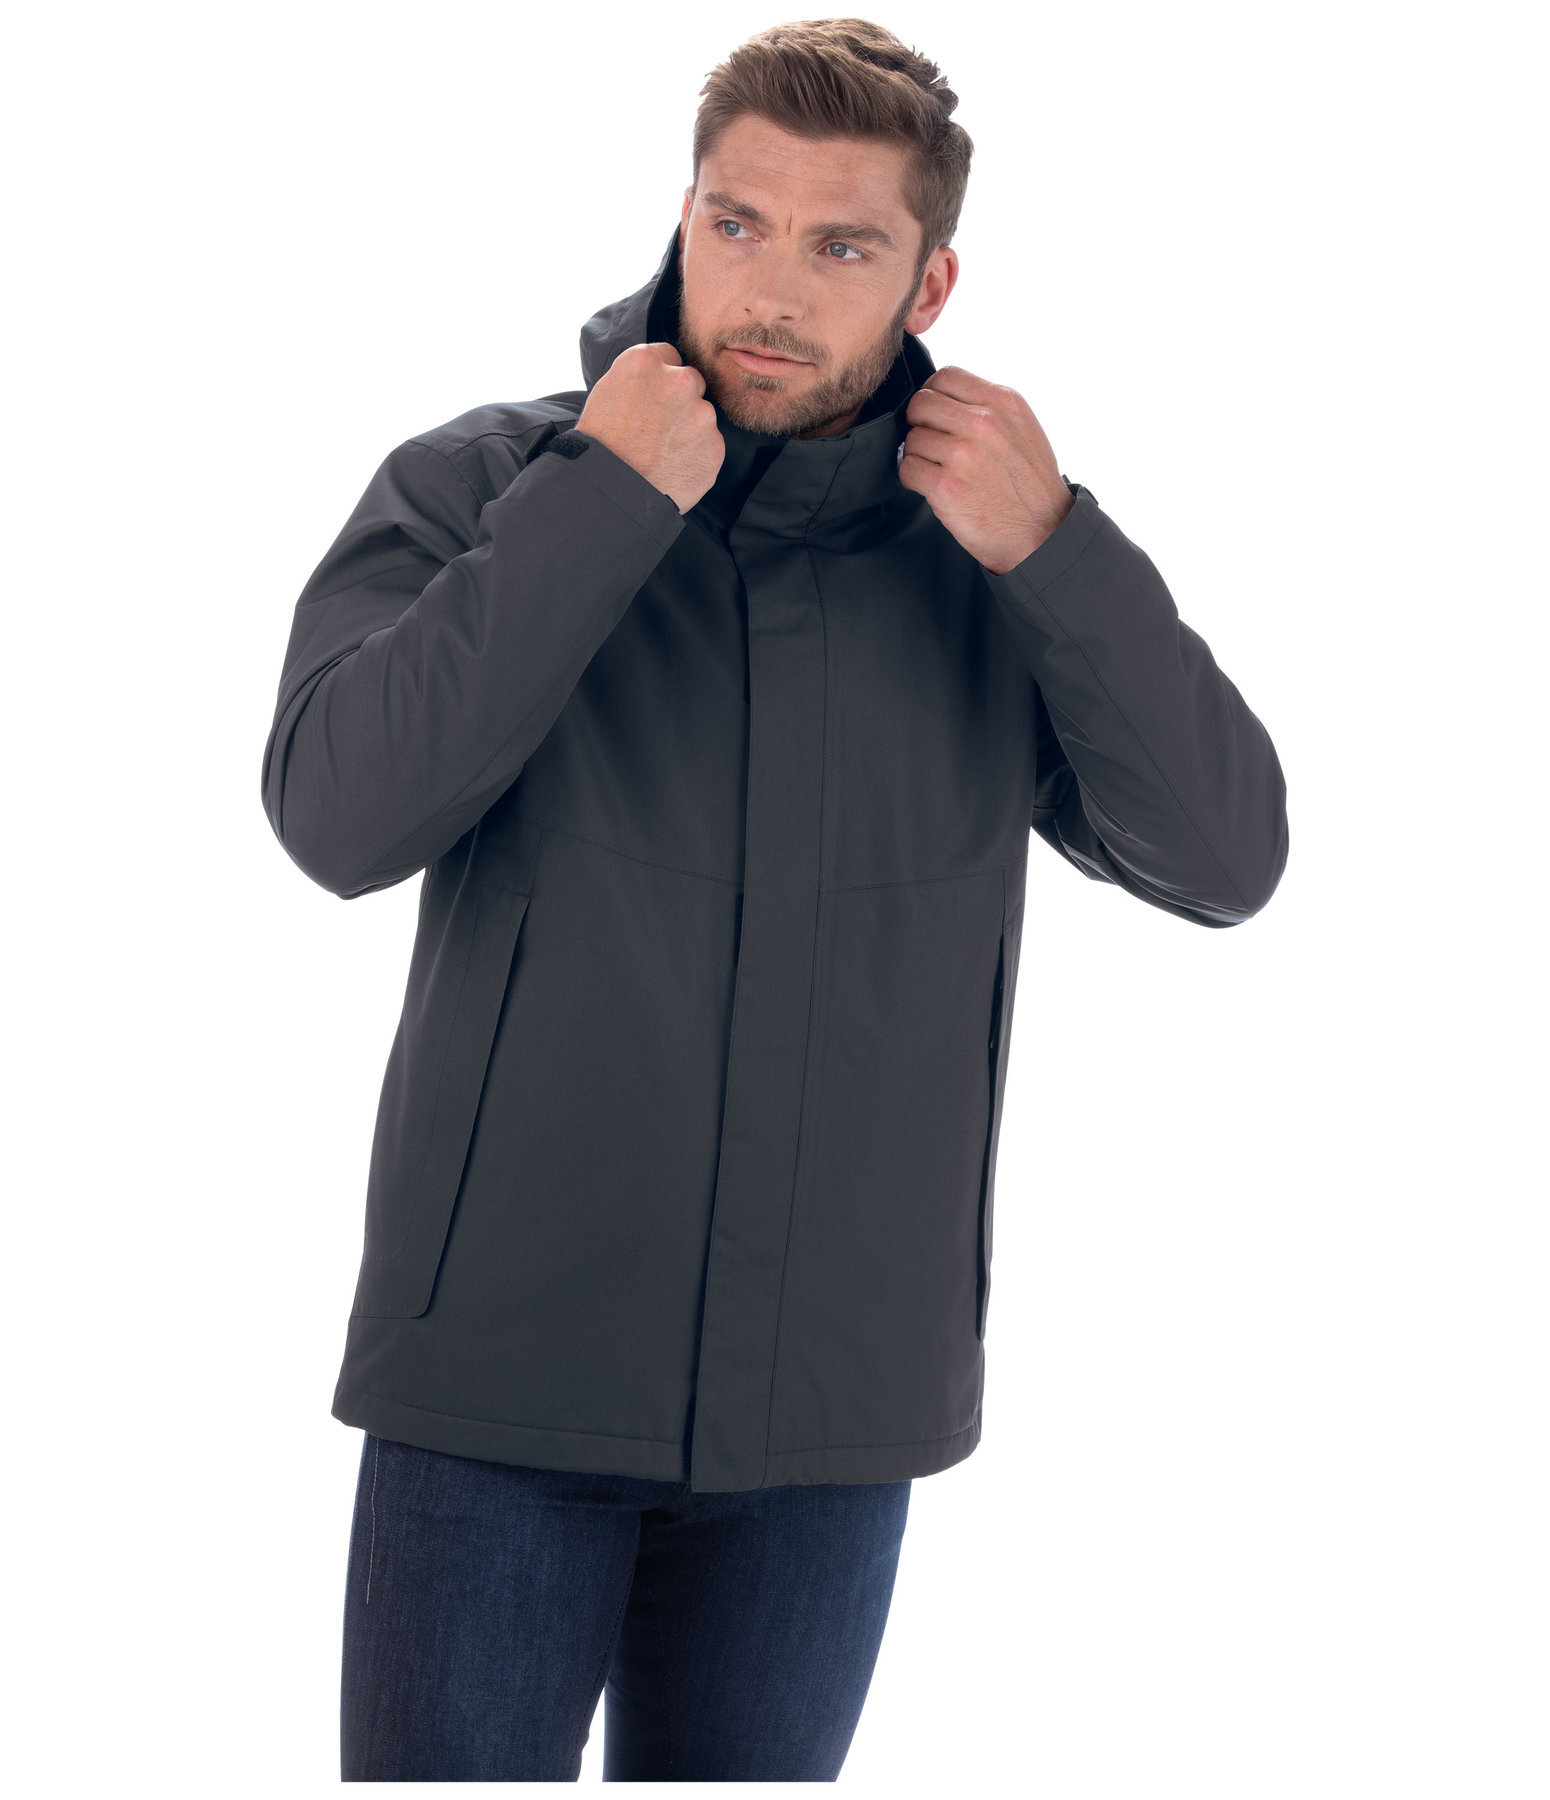 Men's 3-in-1 Functional Winter Jacket Levin